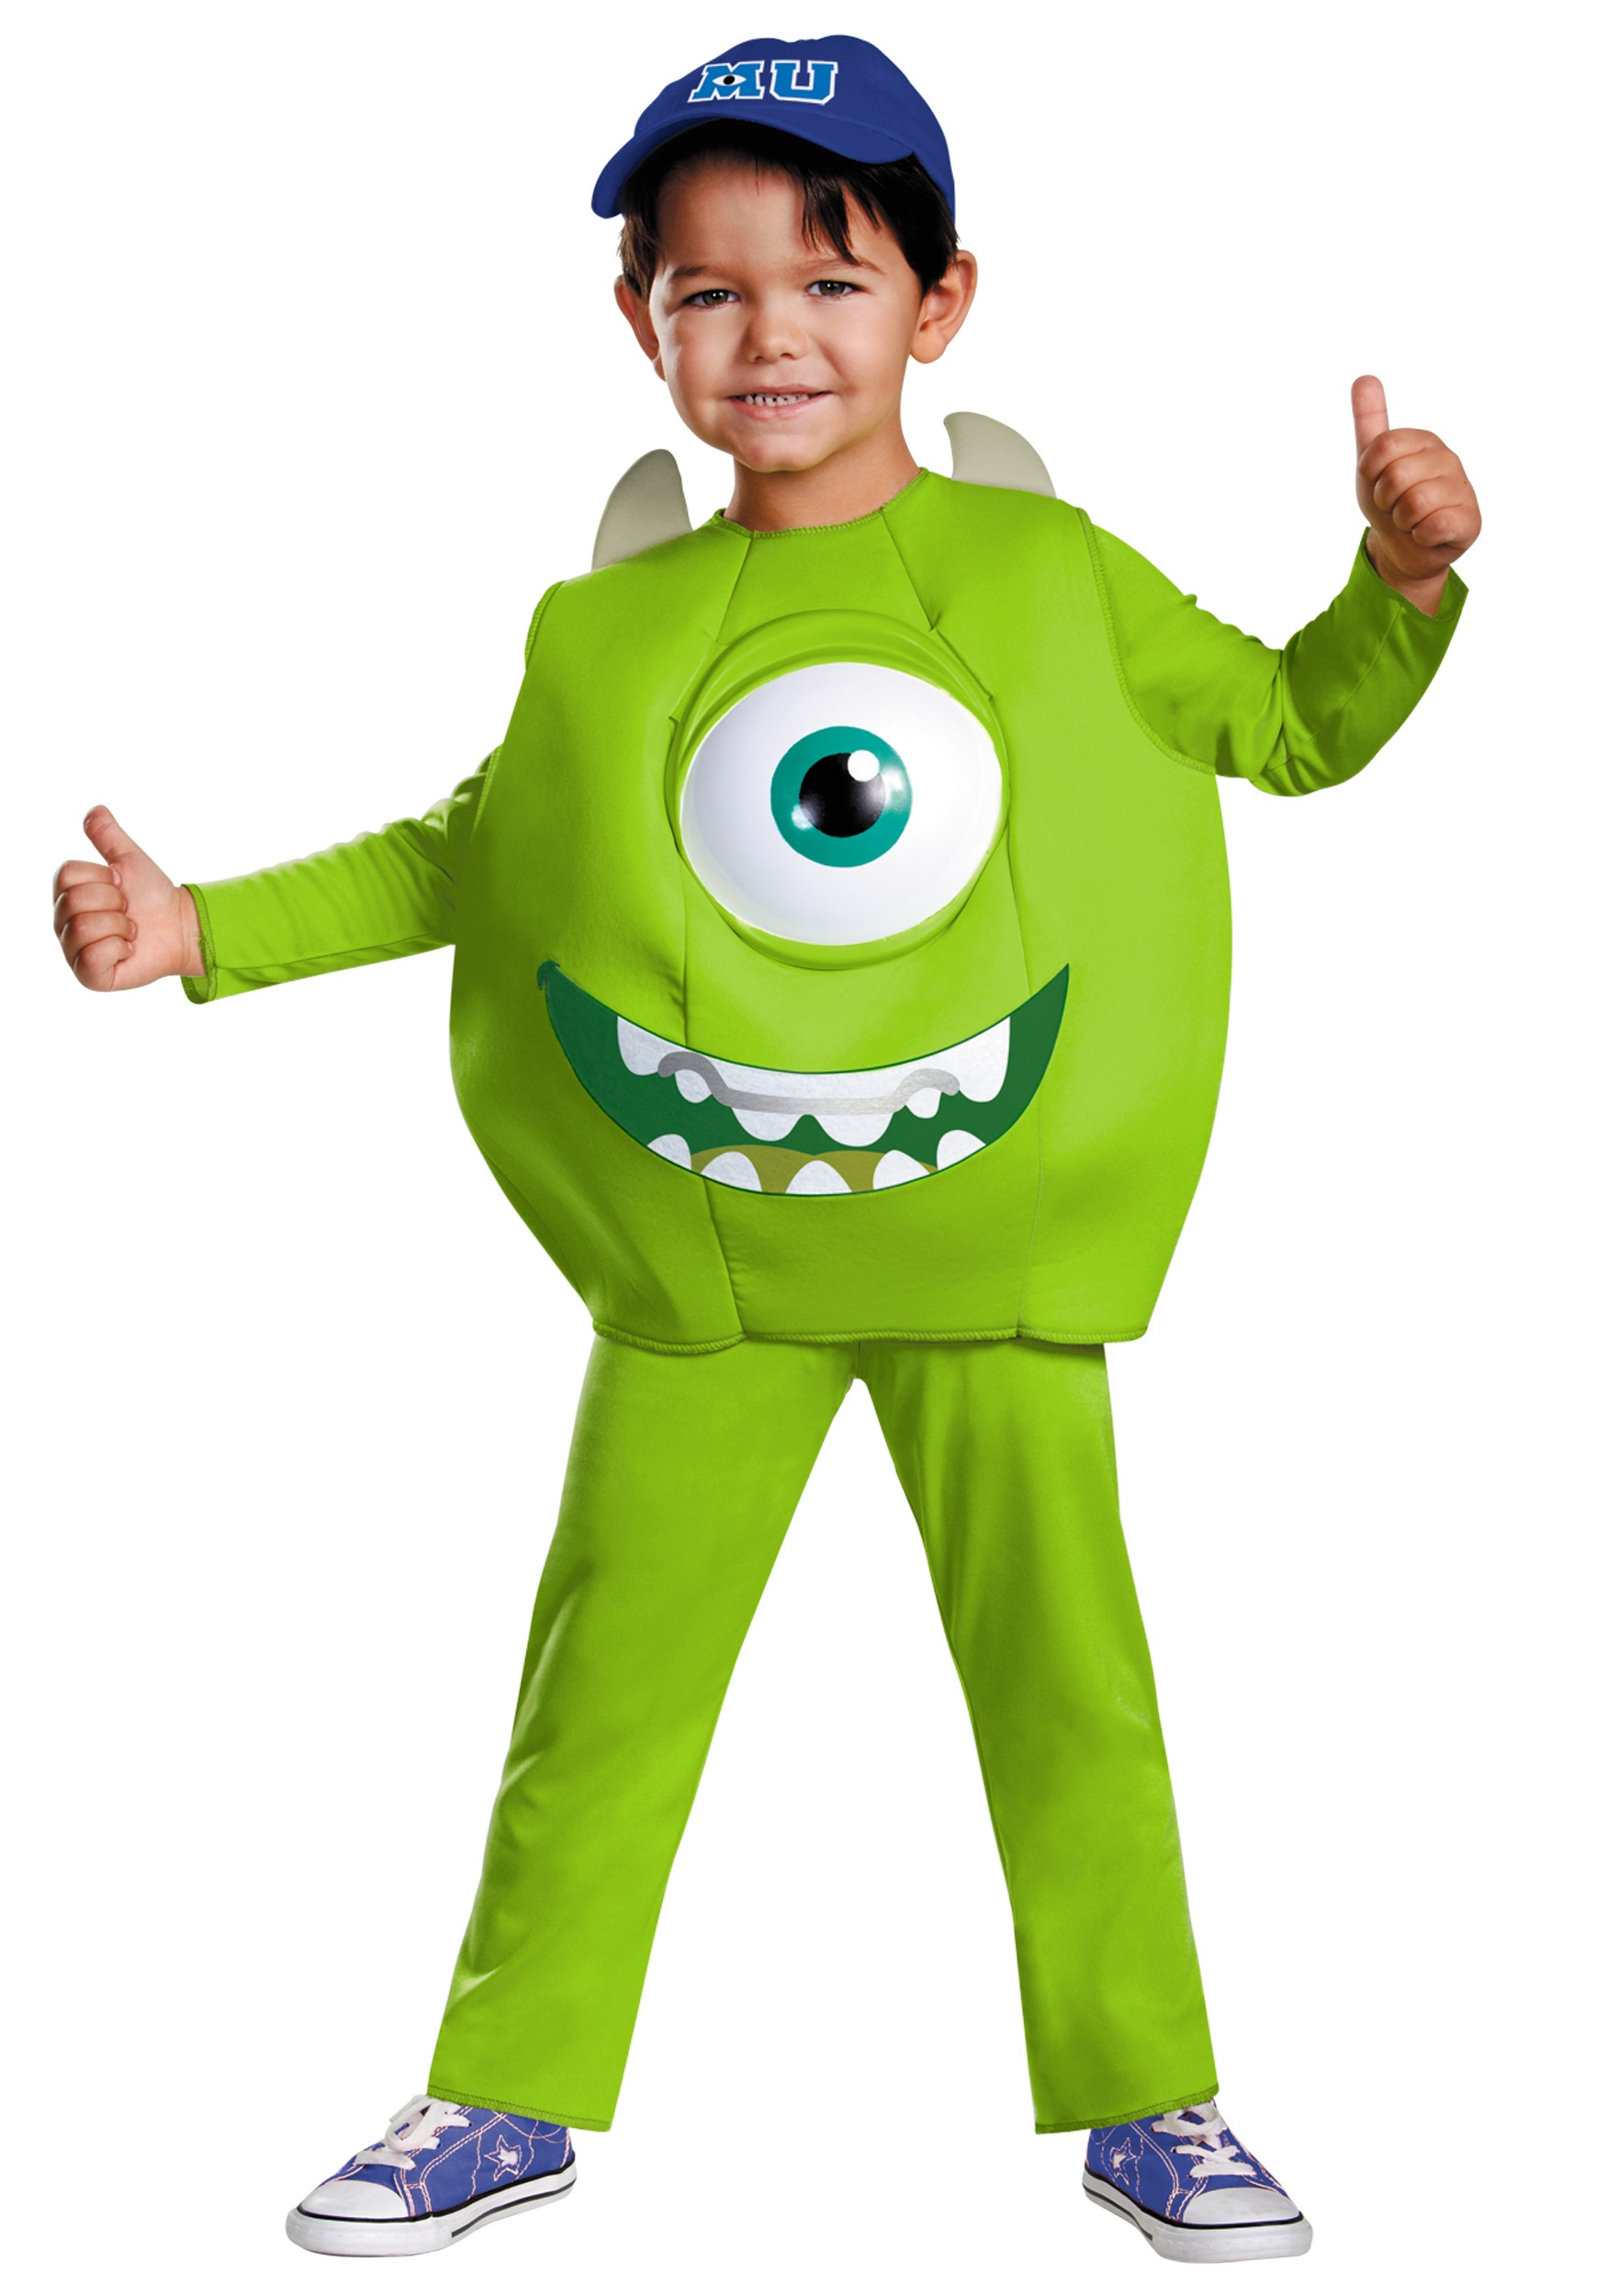 Mike Toddler Deluxe Costume  Costume